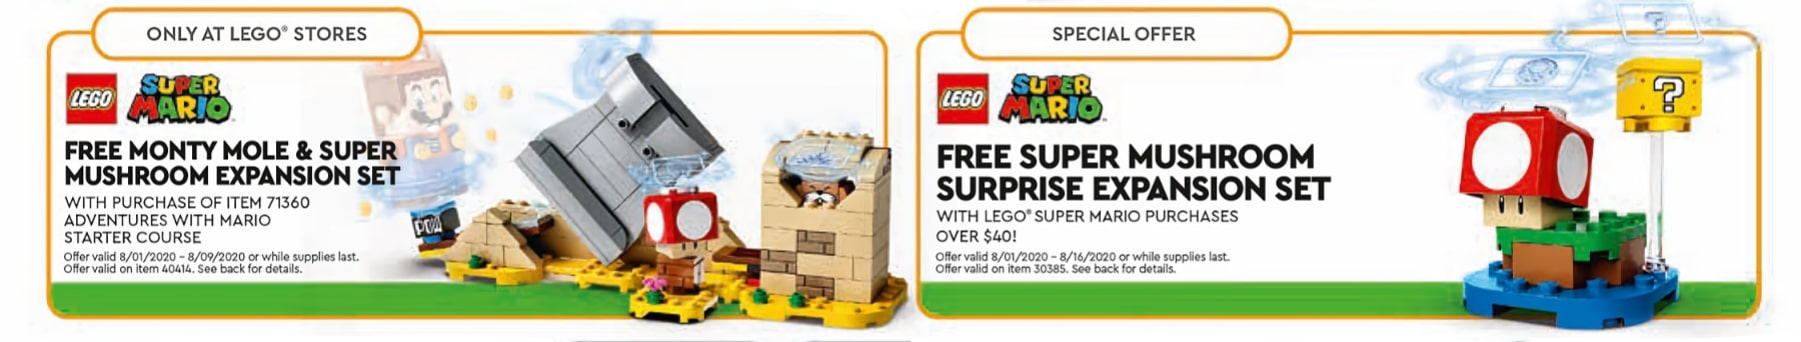 LEGO Store August 2020 Calender Gwp